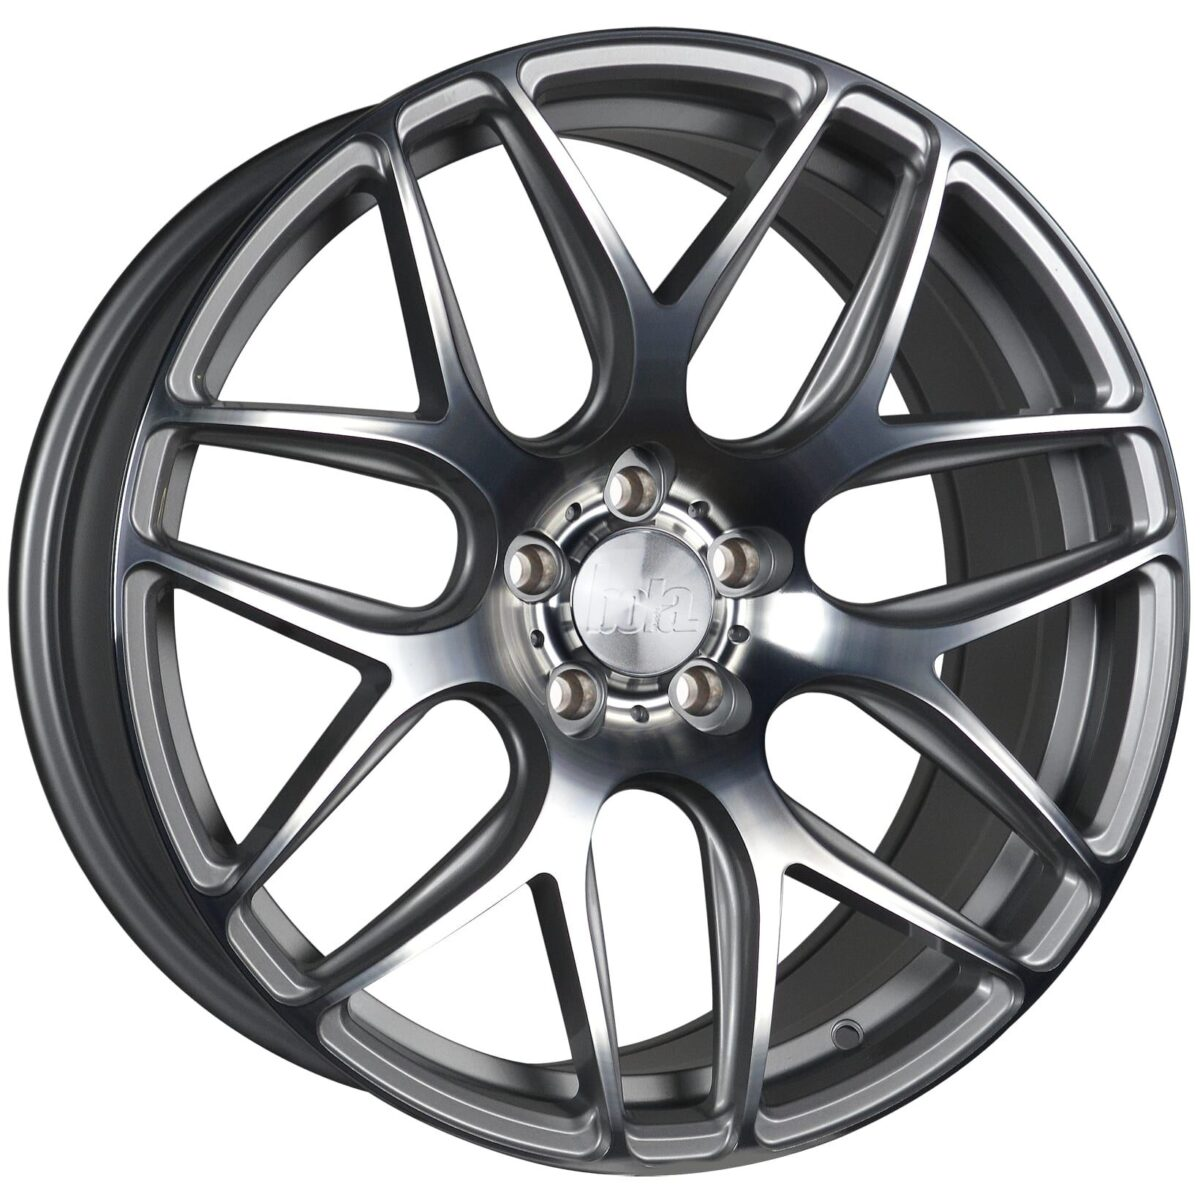 "18"" BOLA B8R Wheels - Silver Polished Face - VW / Audi / Mercedes - 5x112"